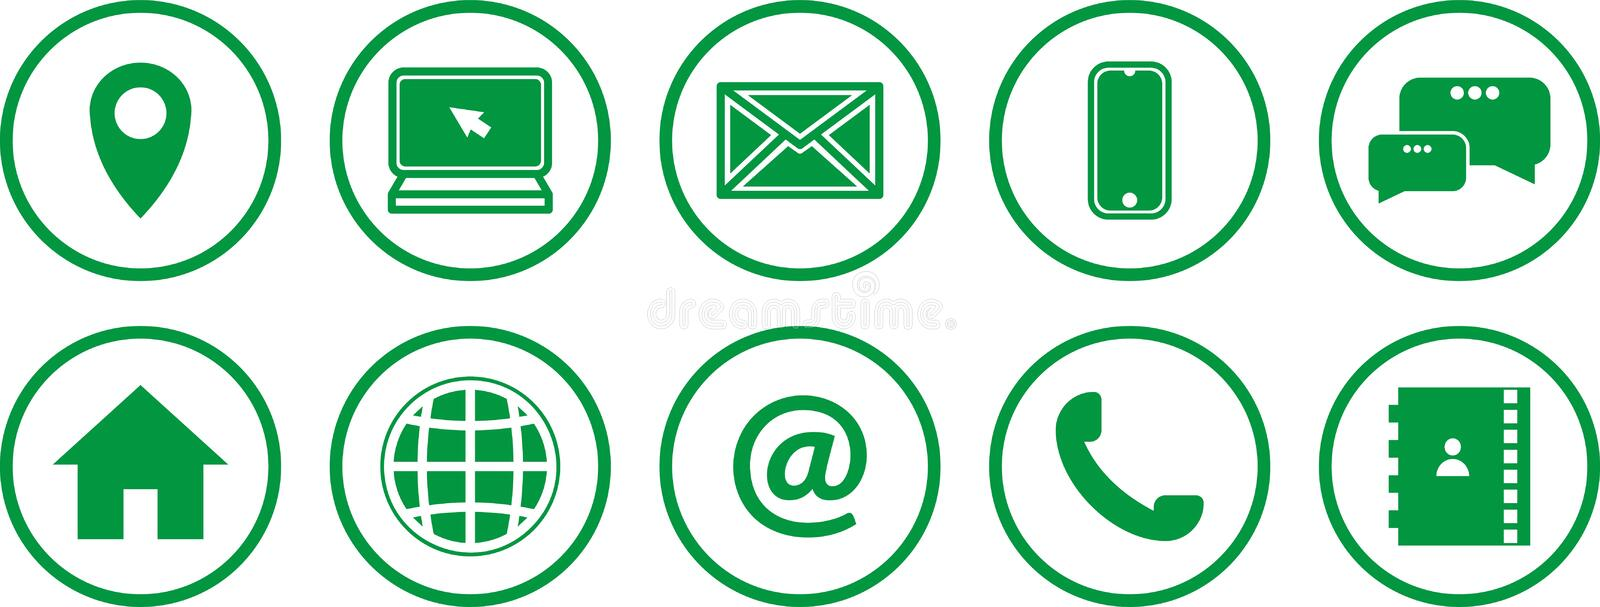 Set of green icons. communications icons. contact us icons vector illustration